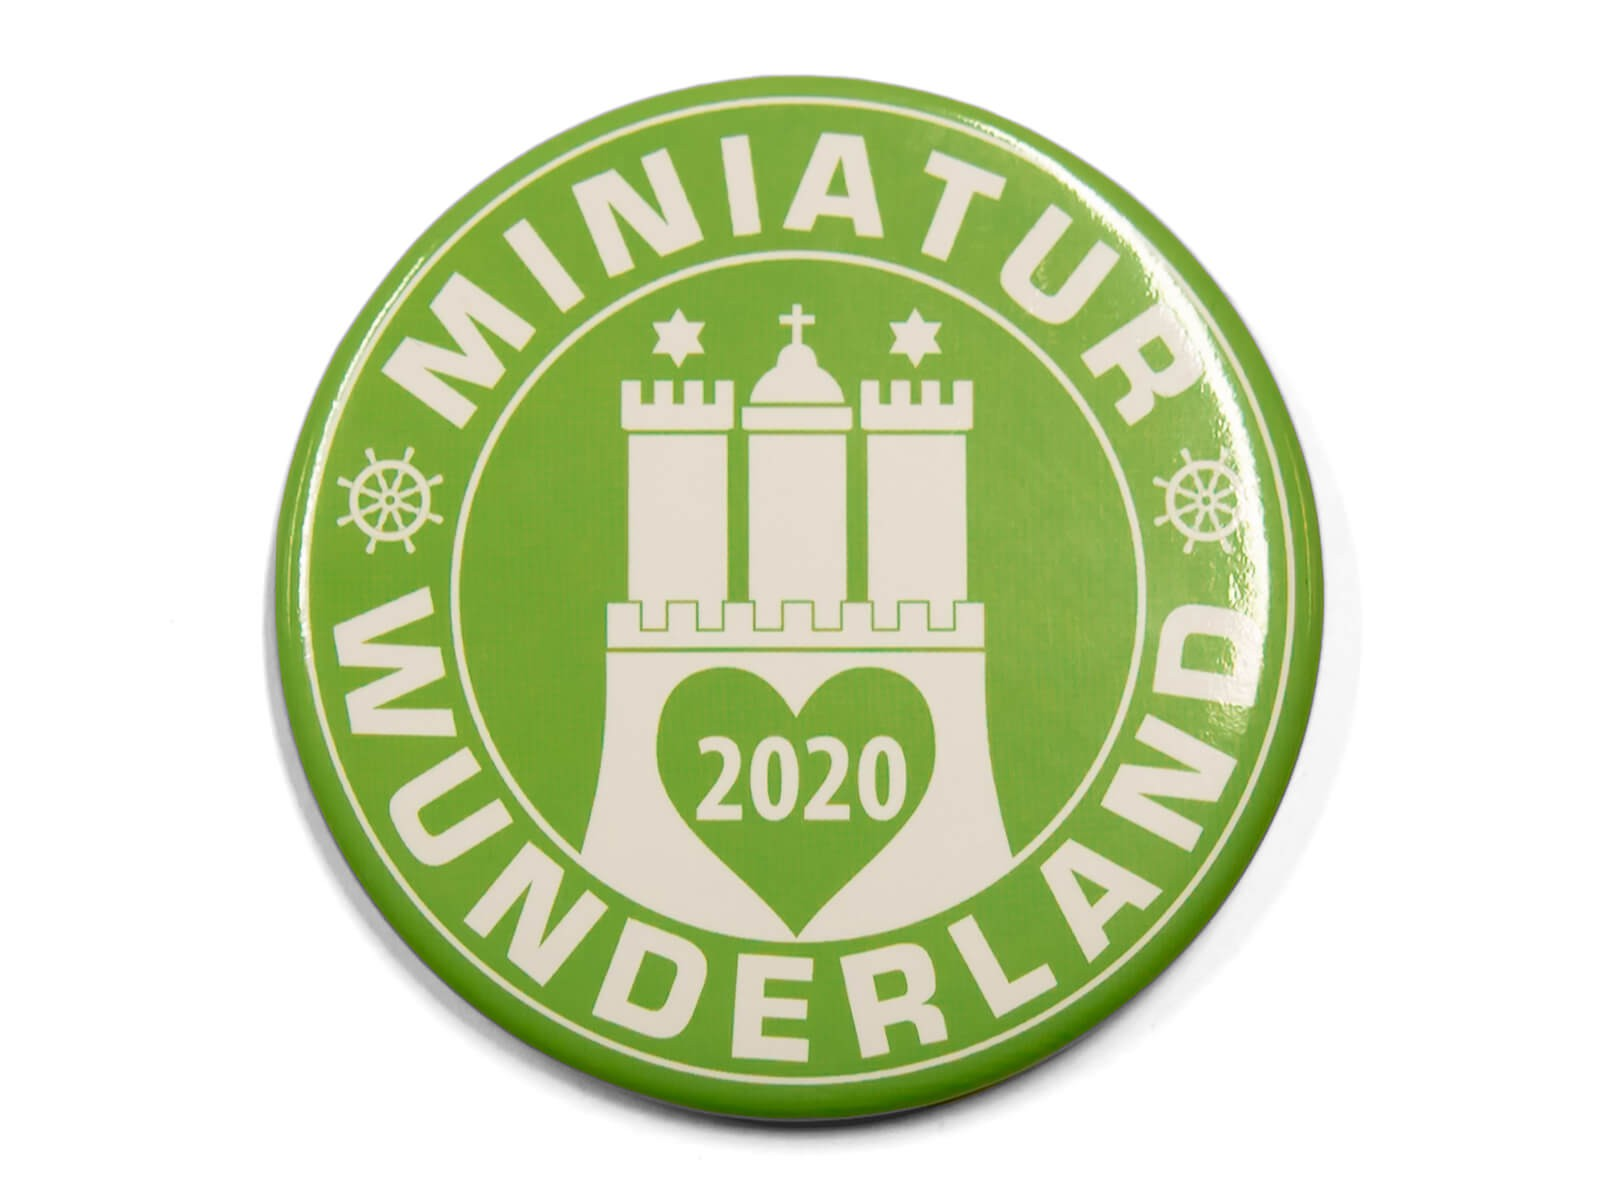 Collectible Magnet Miniatur Wunderland 2017